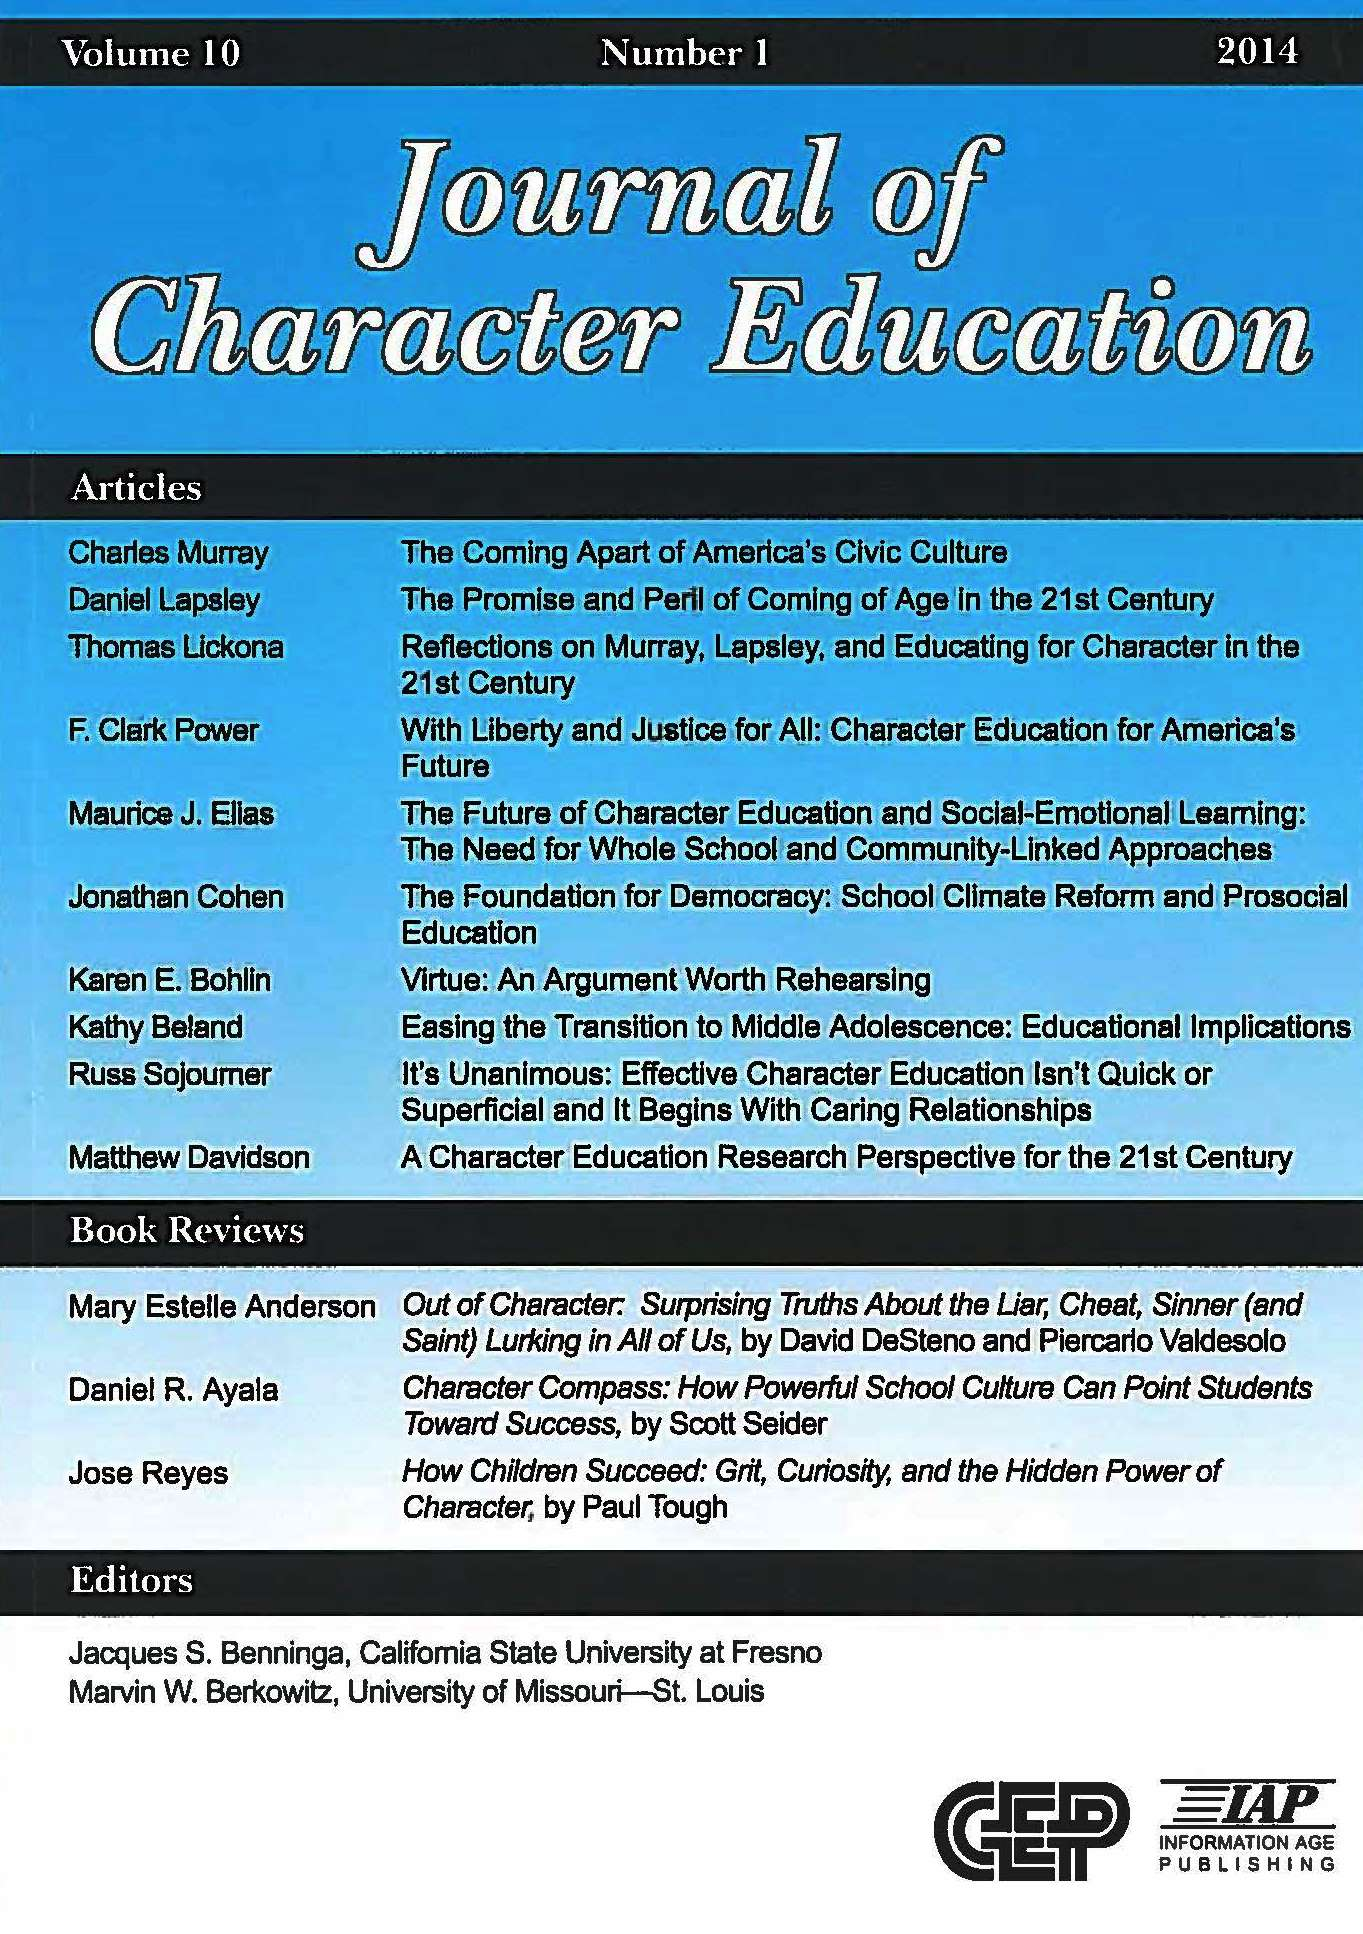 The Journal Of Character Education To Address Character